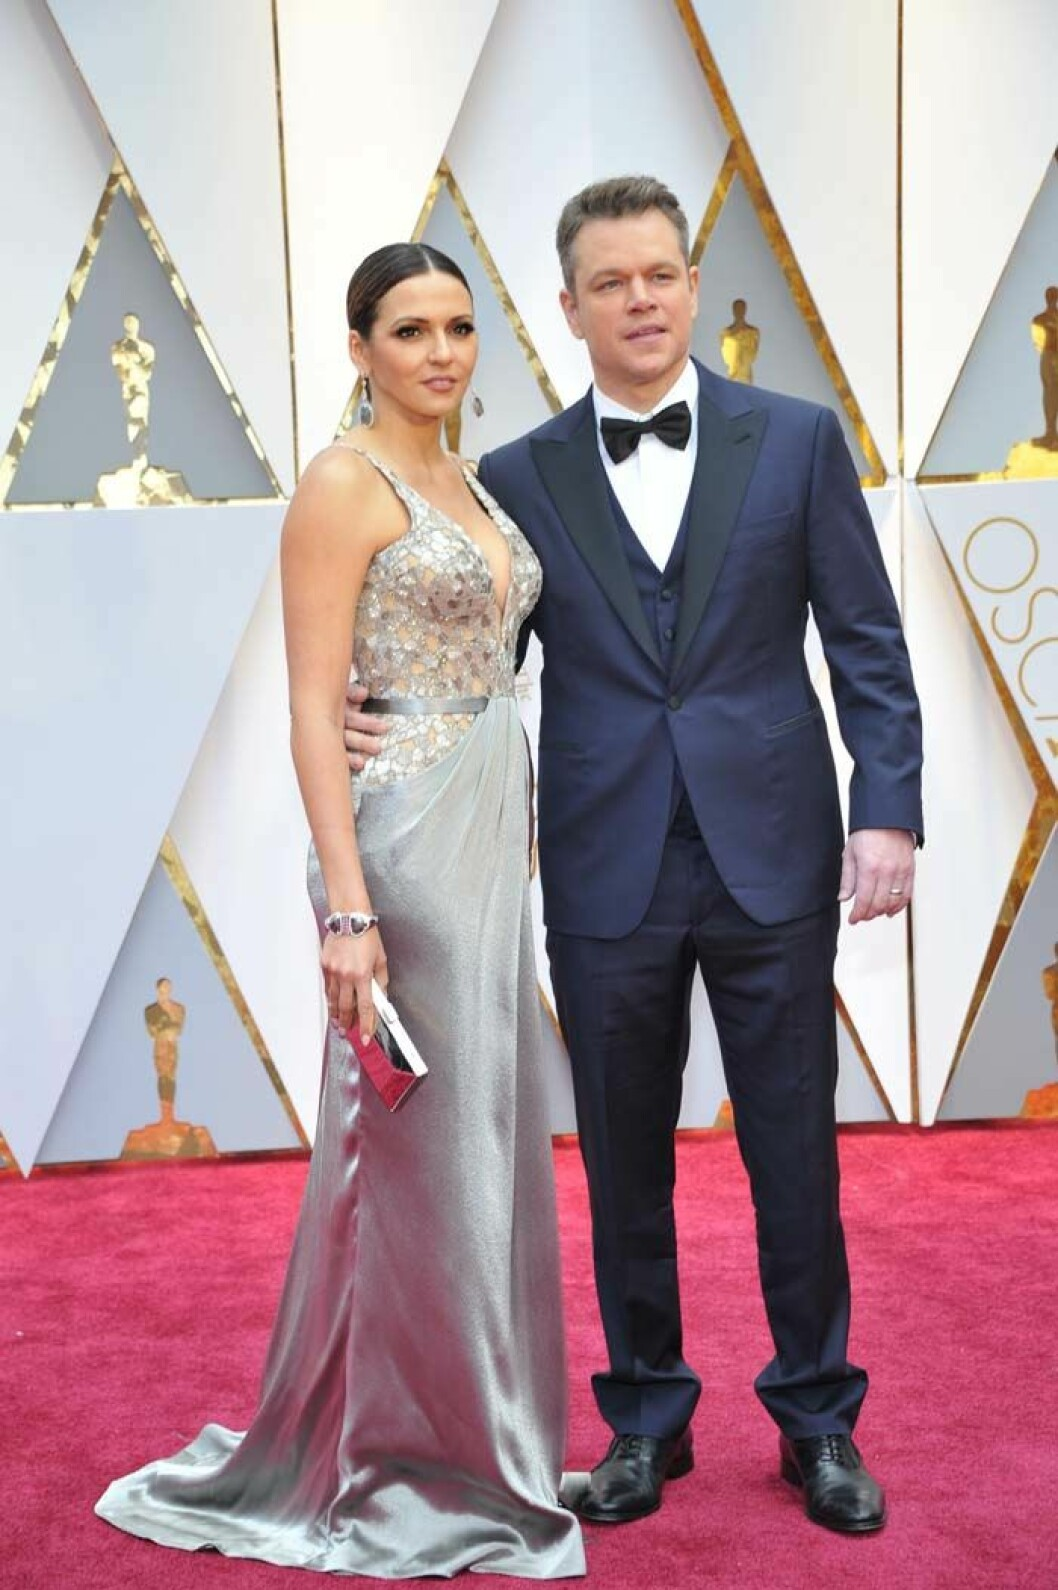 LOS ANGELES, CA - FEBRUARY 26: Luciana Barroso and Matt Damon at the 89th Academy Awards at the Dolby Theatre in Los Angeles, California on February 26, 2017. Credit: mpi99/MediaPunch